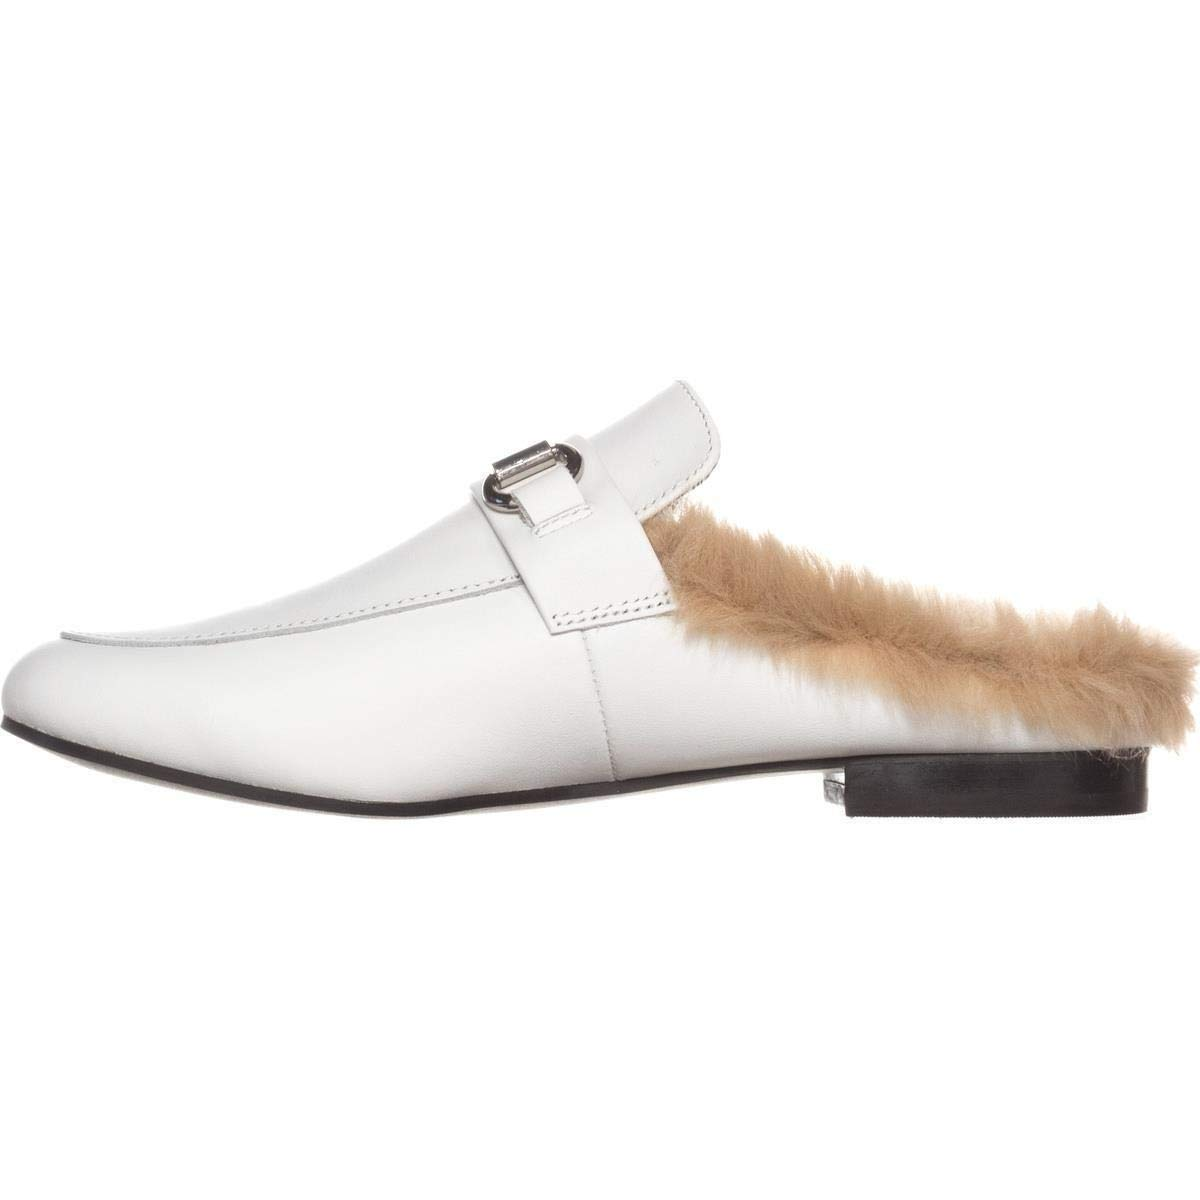 44ab5e573c9 Steve Madden Womens Jill Leather Almond Toe Mules, White, Size 8.5